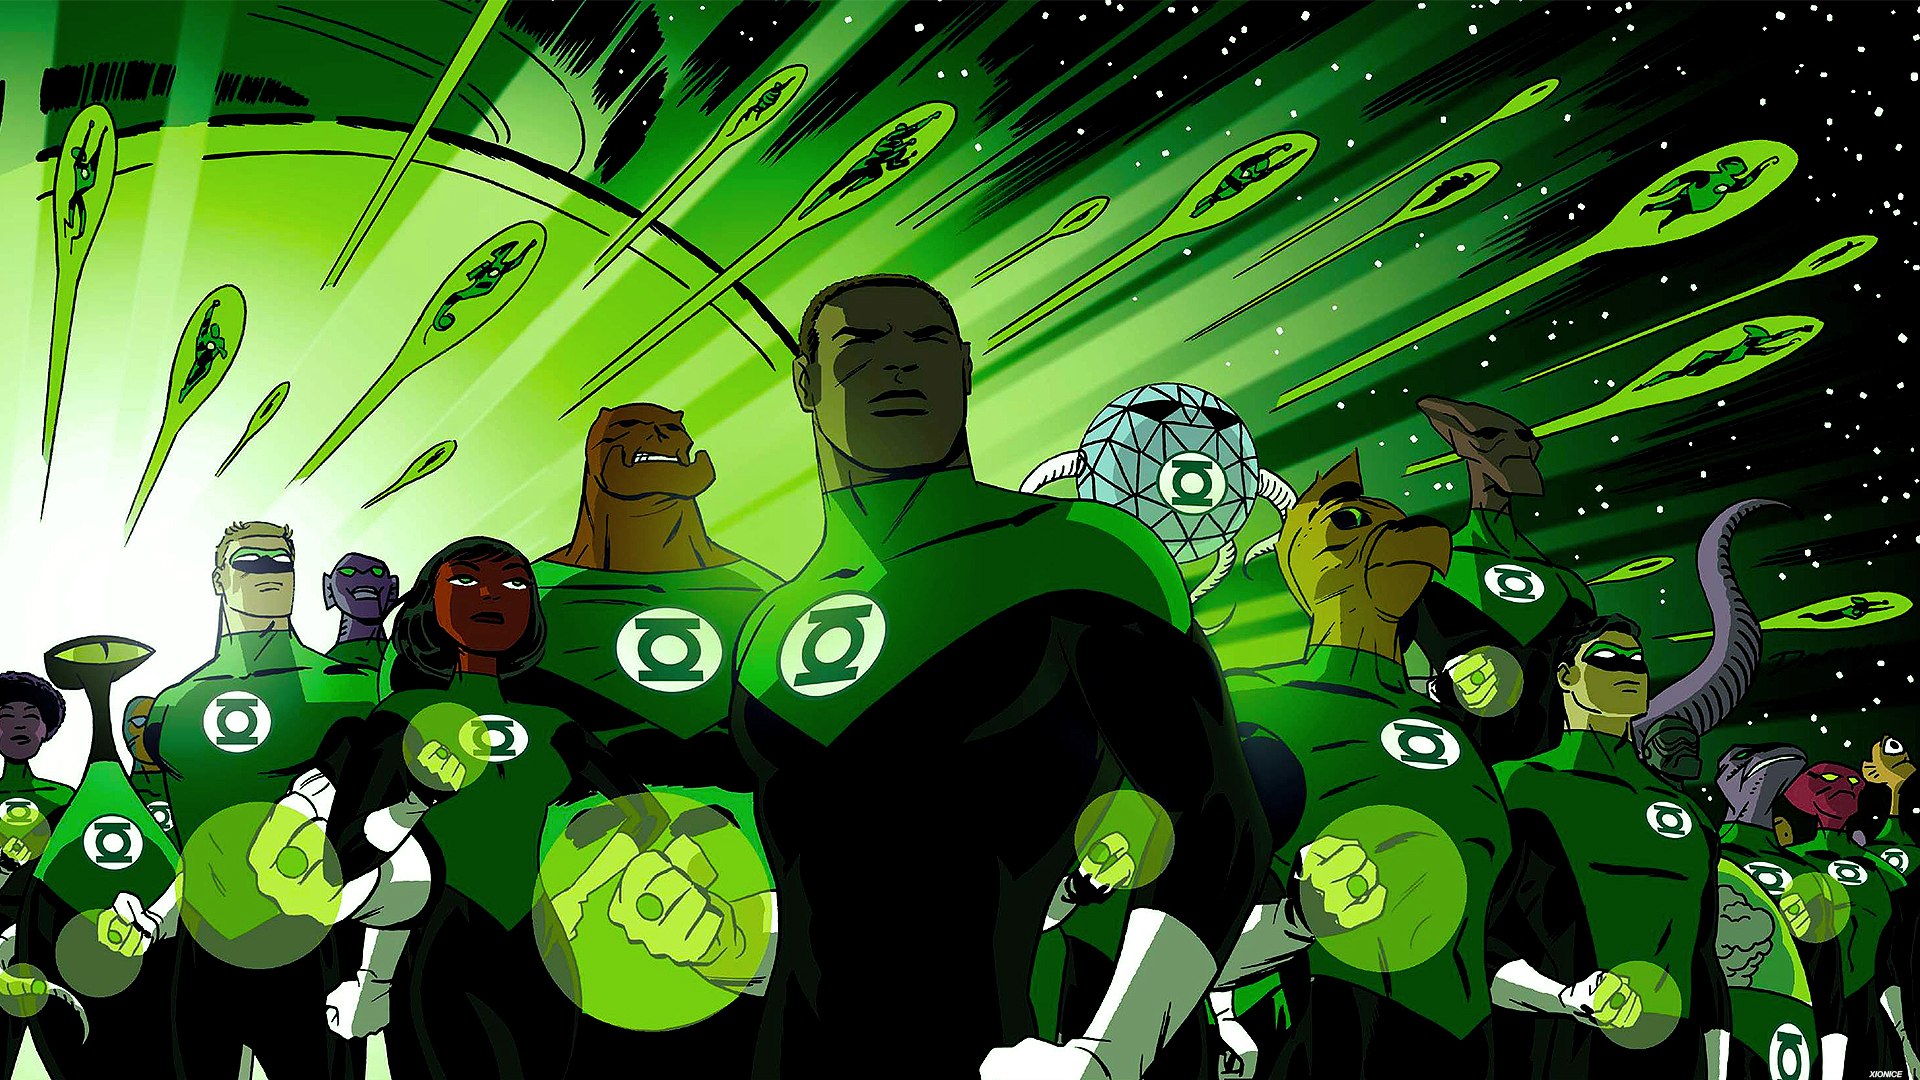 green lantern corps by xionice fan art wallpaper books novels 2015 1920x1080